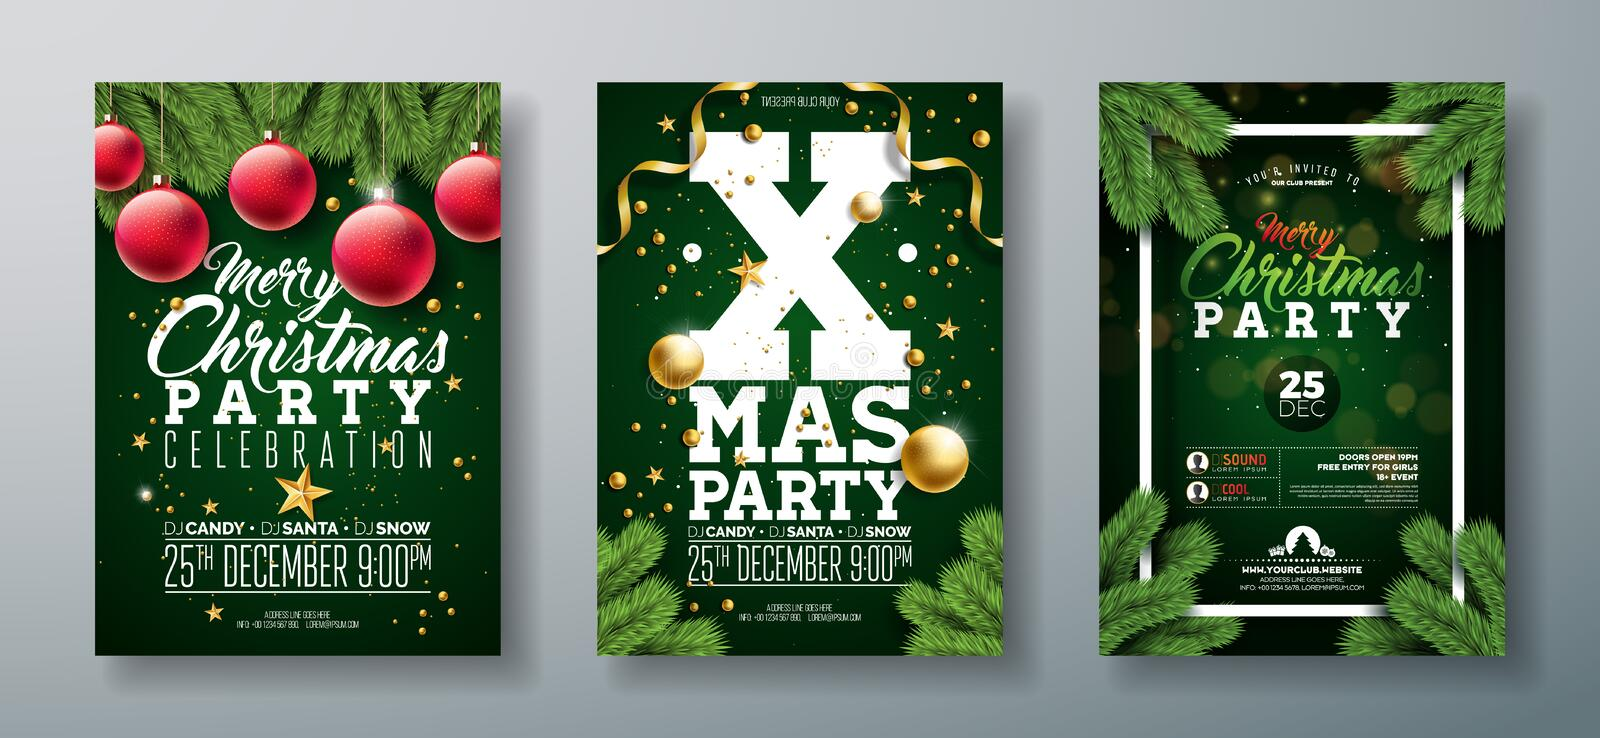 Vector Christmas Party Flyer Design with Holiday Typography Elements and Ornamental Ball, Pine Branch on Dark Green vector illustration